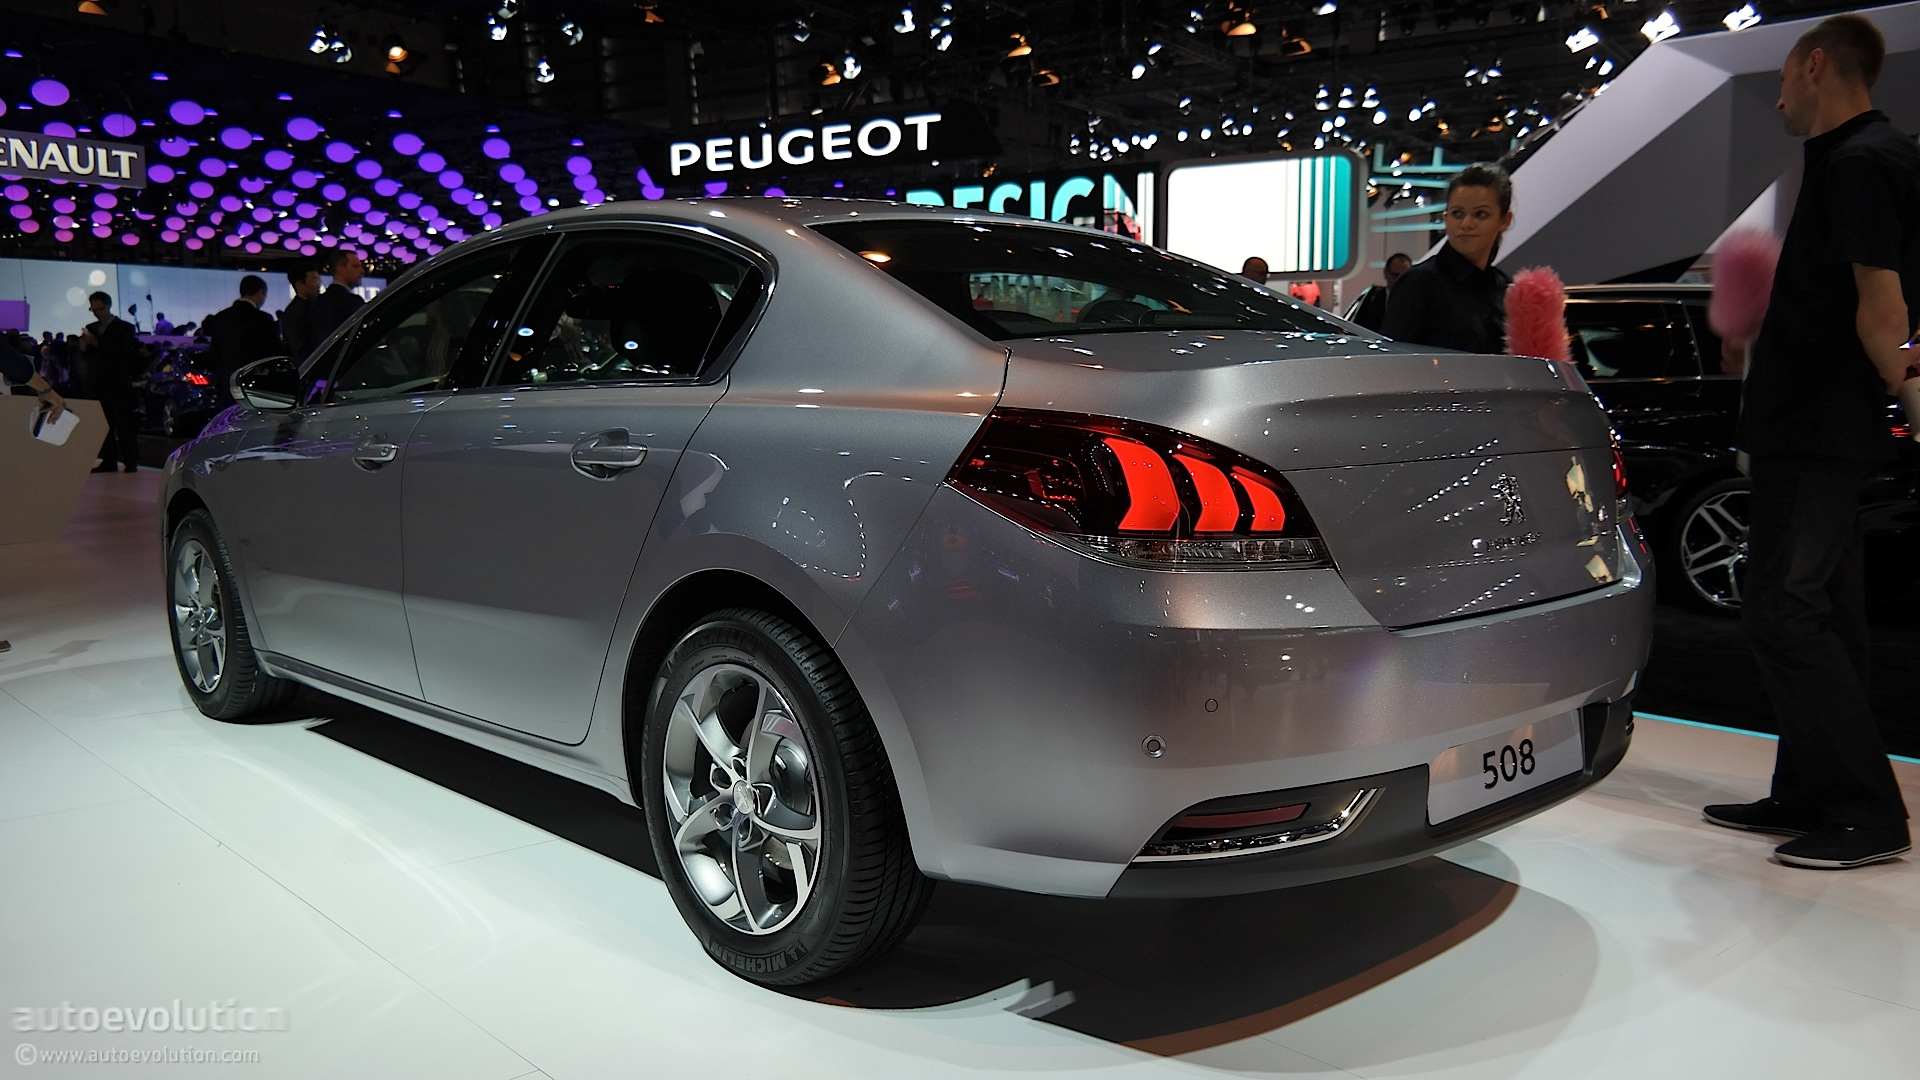 Peugeot 508 Sedan Sw And Rxh Updated For The Paris Motor